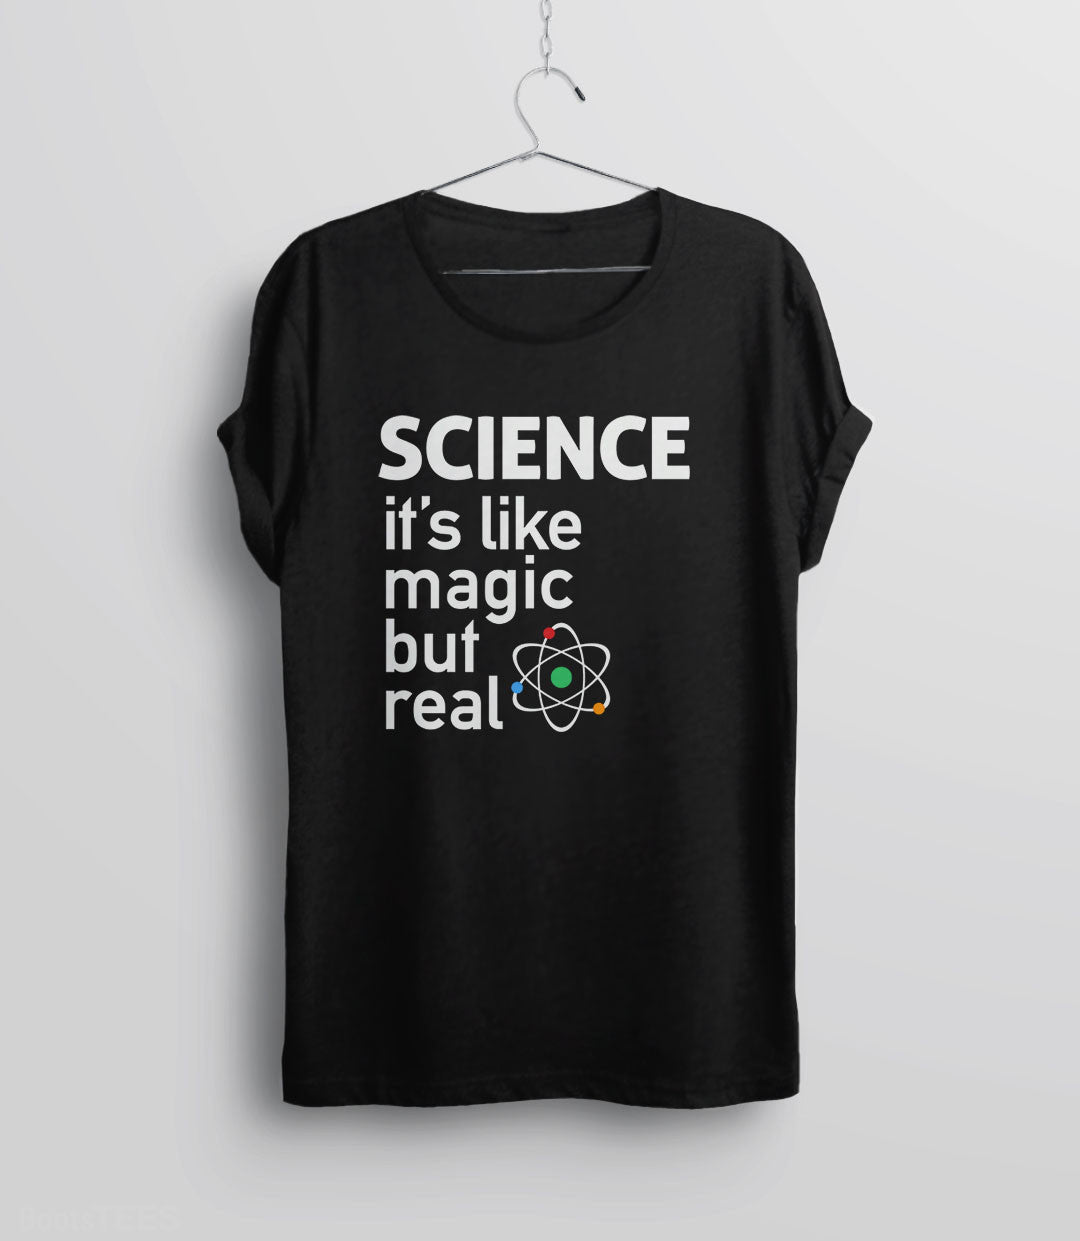 SCIENCE: It's like magic but real - funny science t-shirt, unisex black